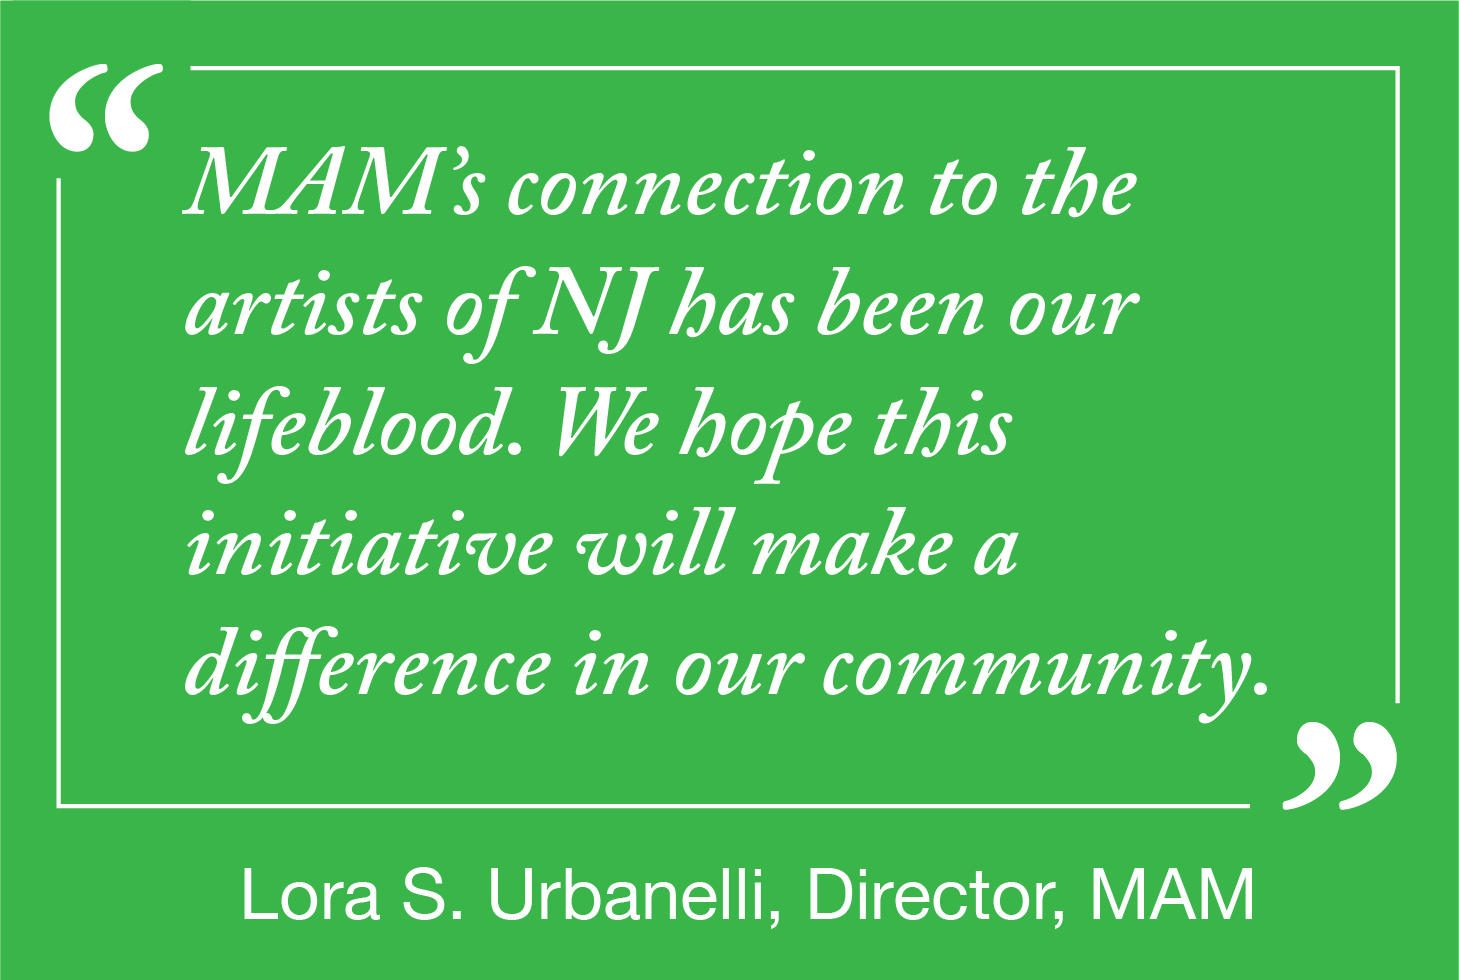 A quote from lora urbanelli on a green background: MAM's connection to the artists of NJ has been our lifeblood. We hope this initiative will make a difference in our community.